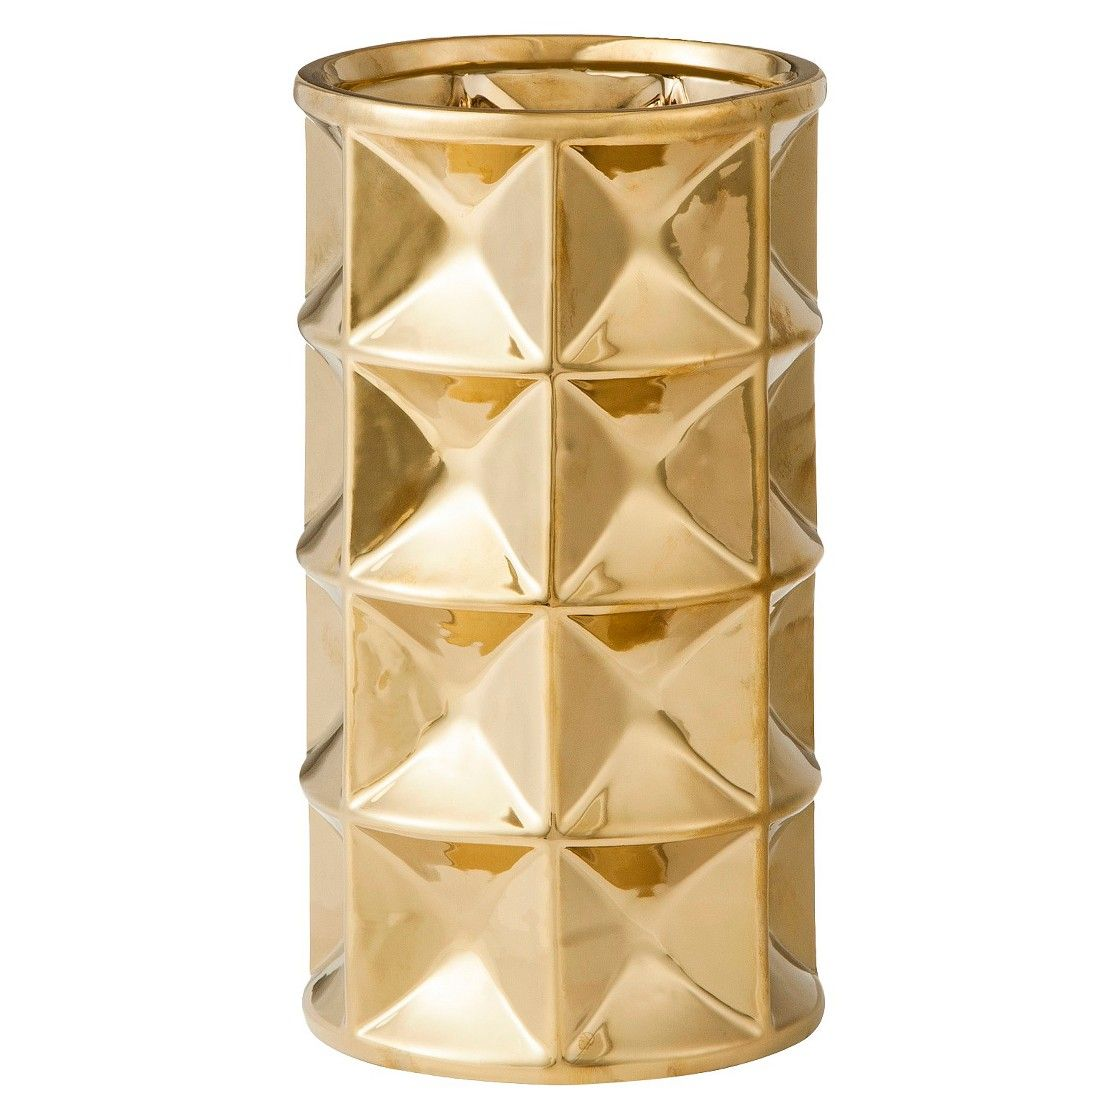 Nate Berkus Round Geo Vase - Gold got this today for my office ...